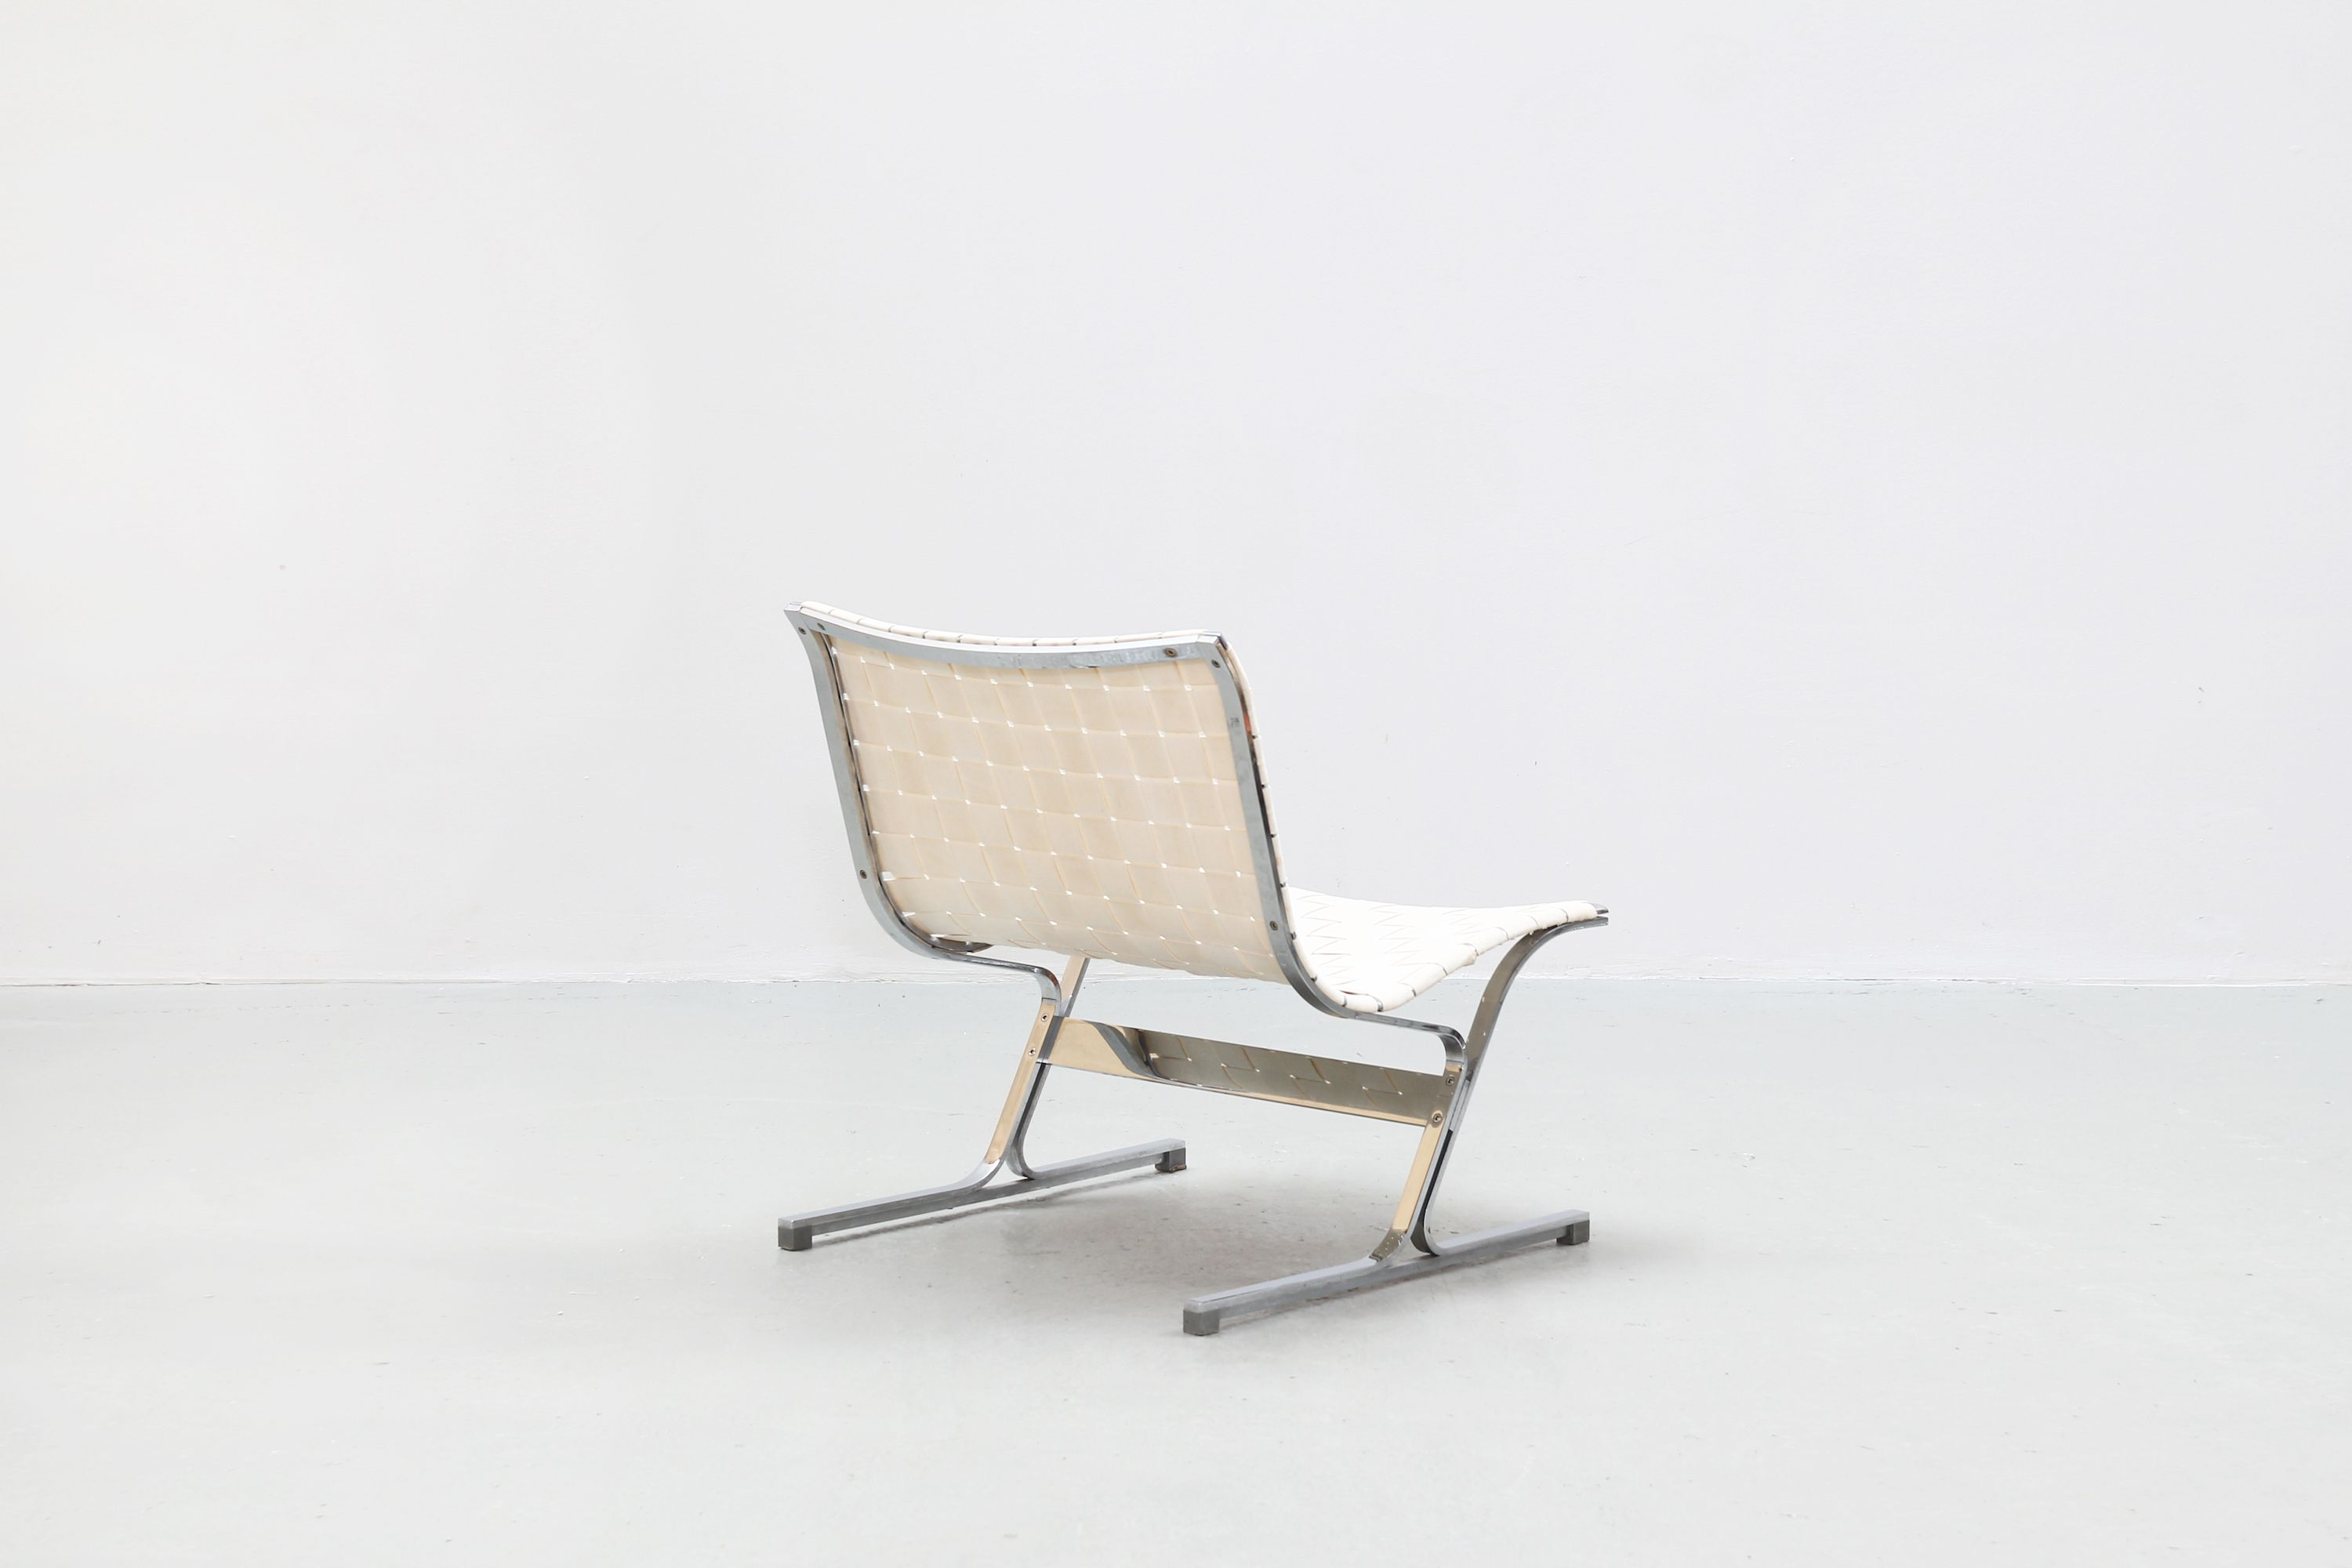 Sensational Pair Of Vintage Lounge Chairs By Ross Littell For Icf Italy Creativecarmelina Interior Chair Design Creativecarmelinacom